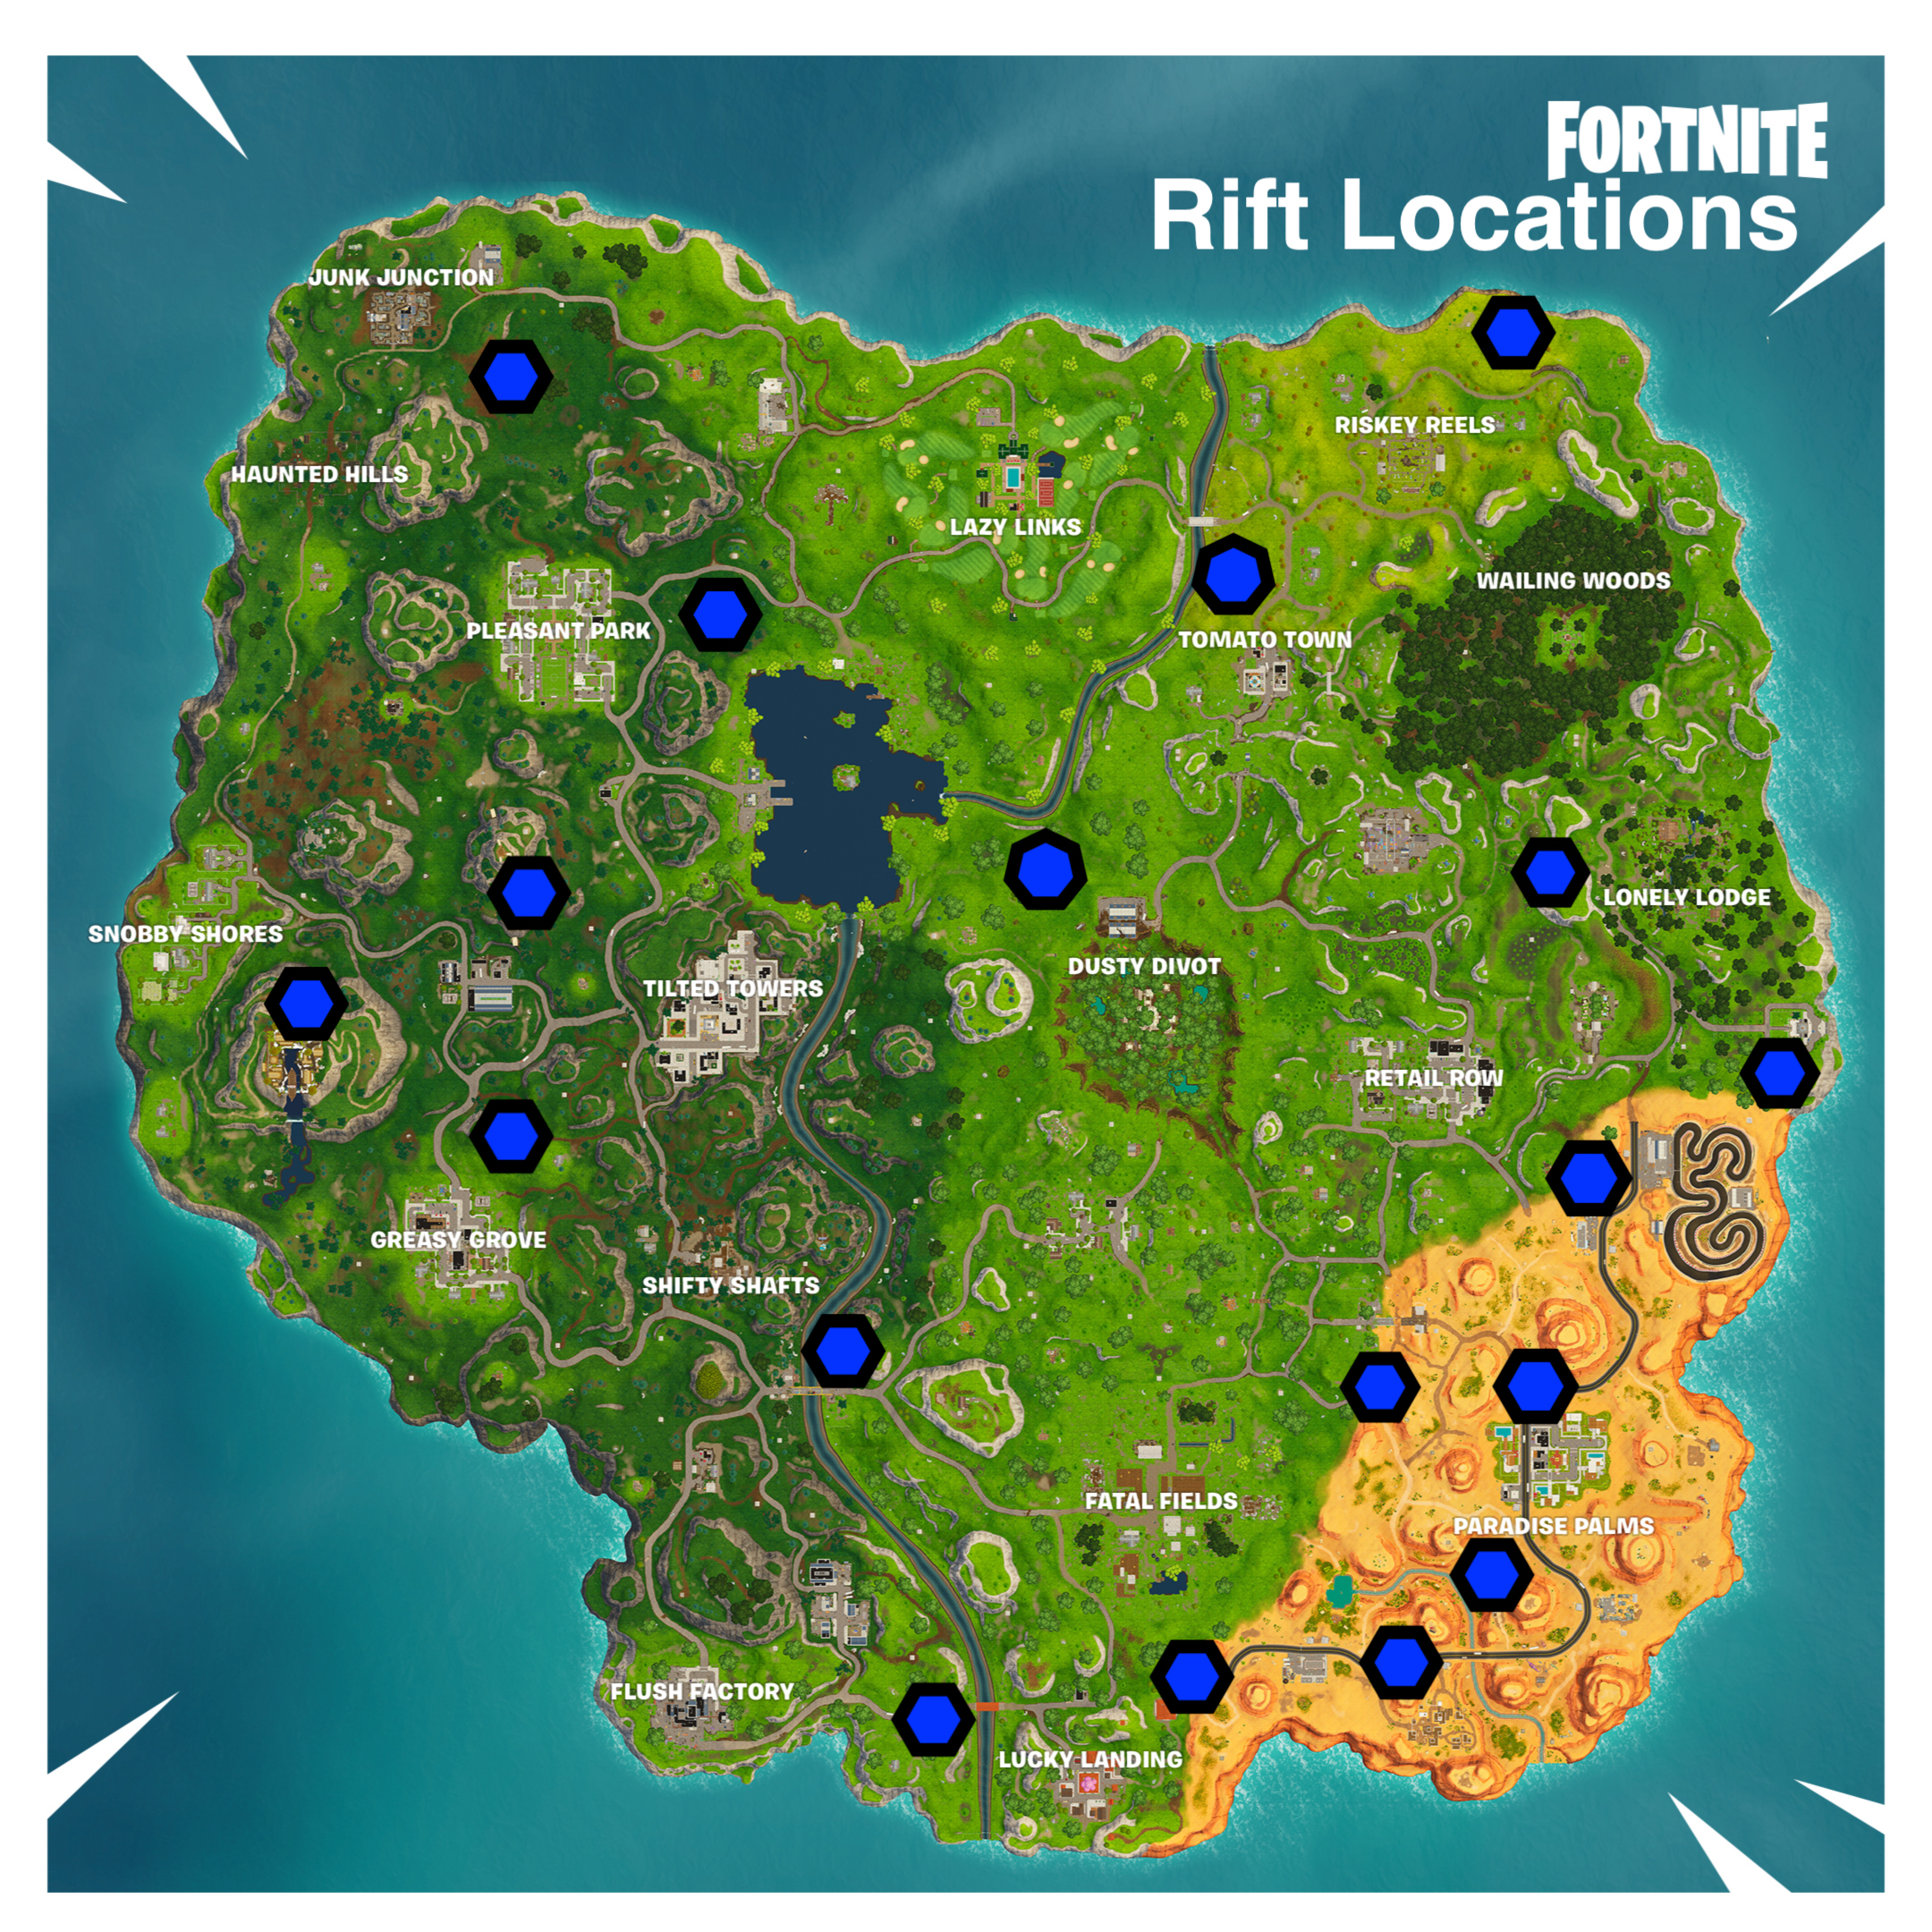 Fortnite Rift Locations Video And Guide For Finding Them All On